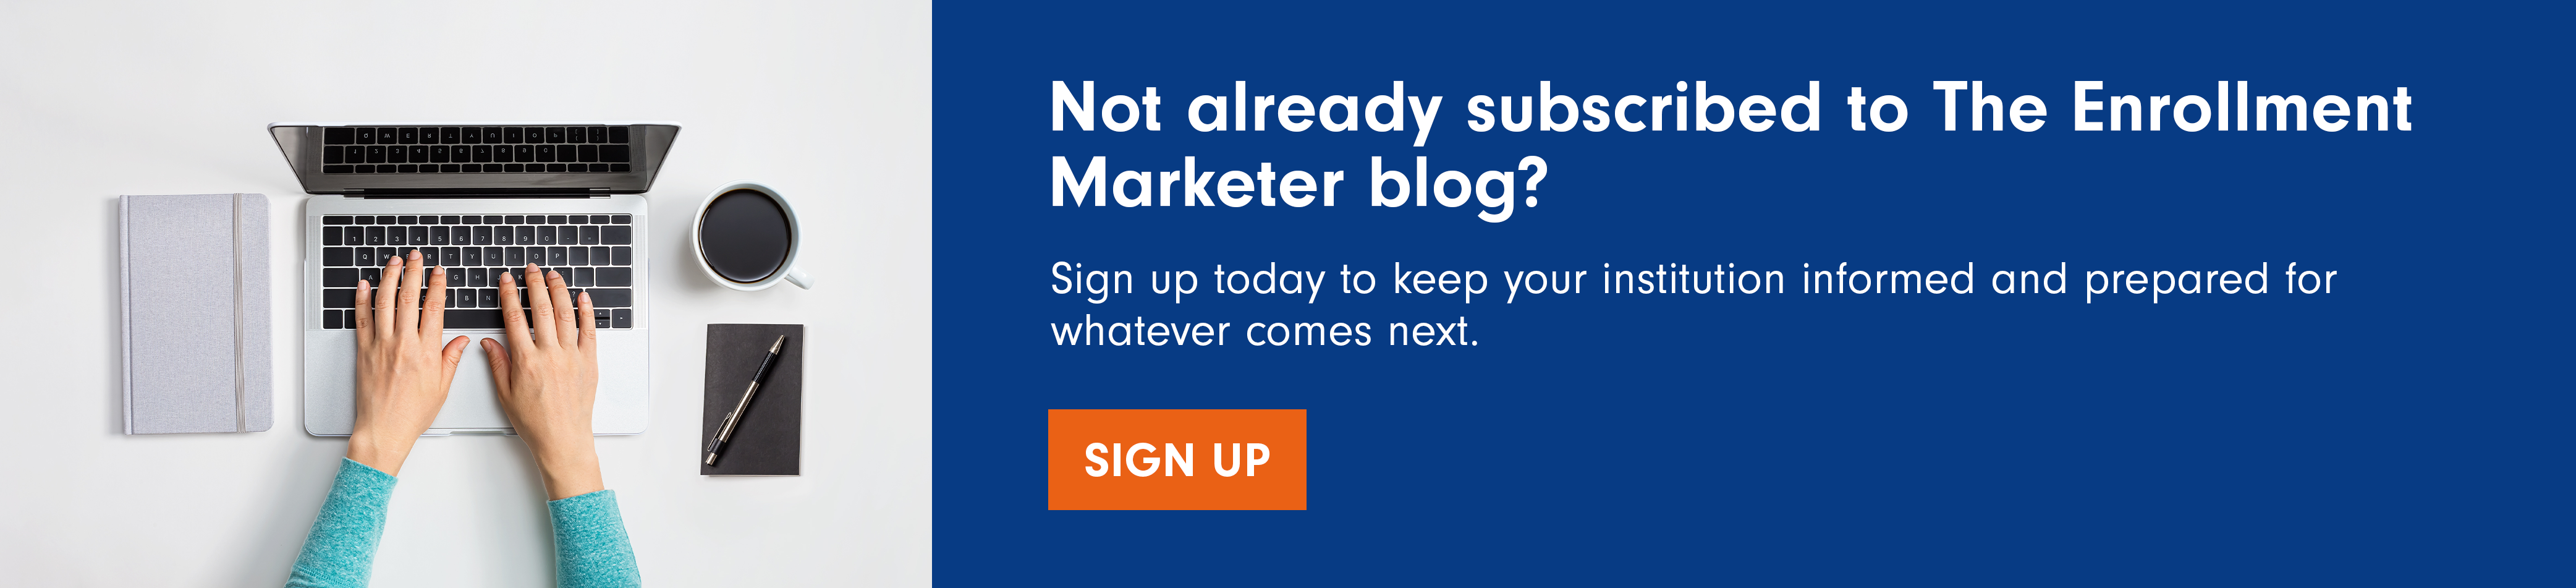 Not already subscribed to The Enrollment Marketer? Sign up today to keep your institution informed and prepared for whatever comes next.